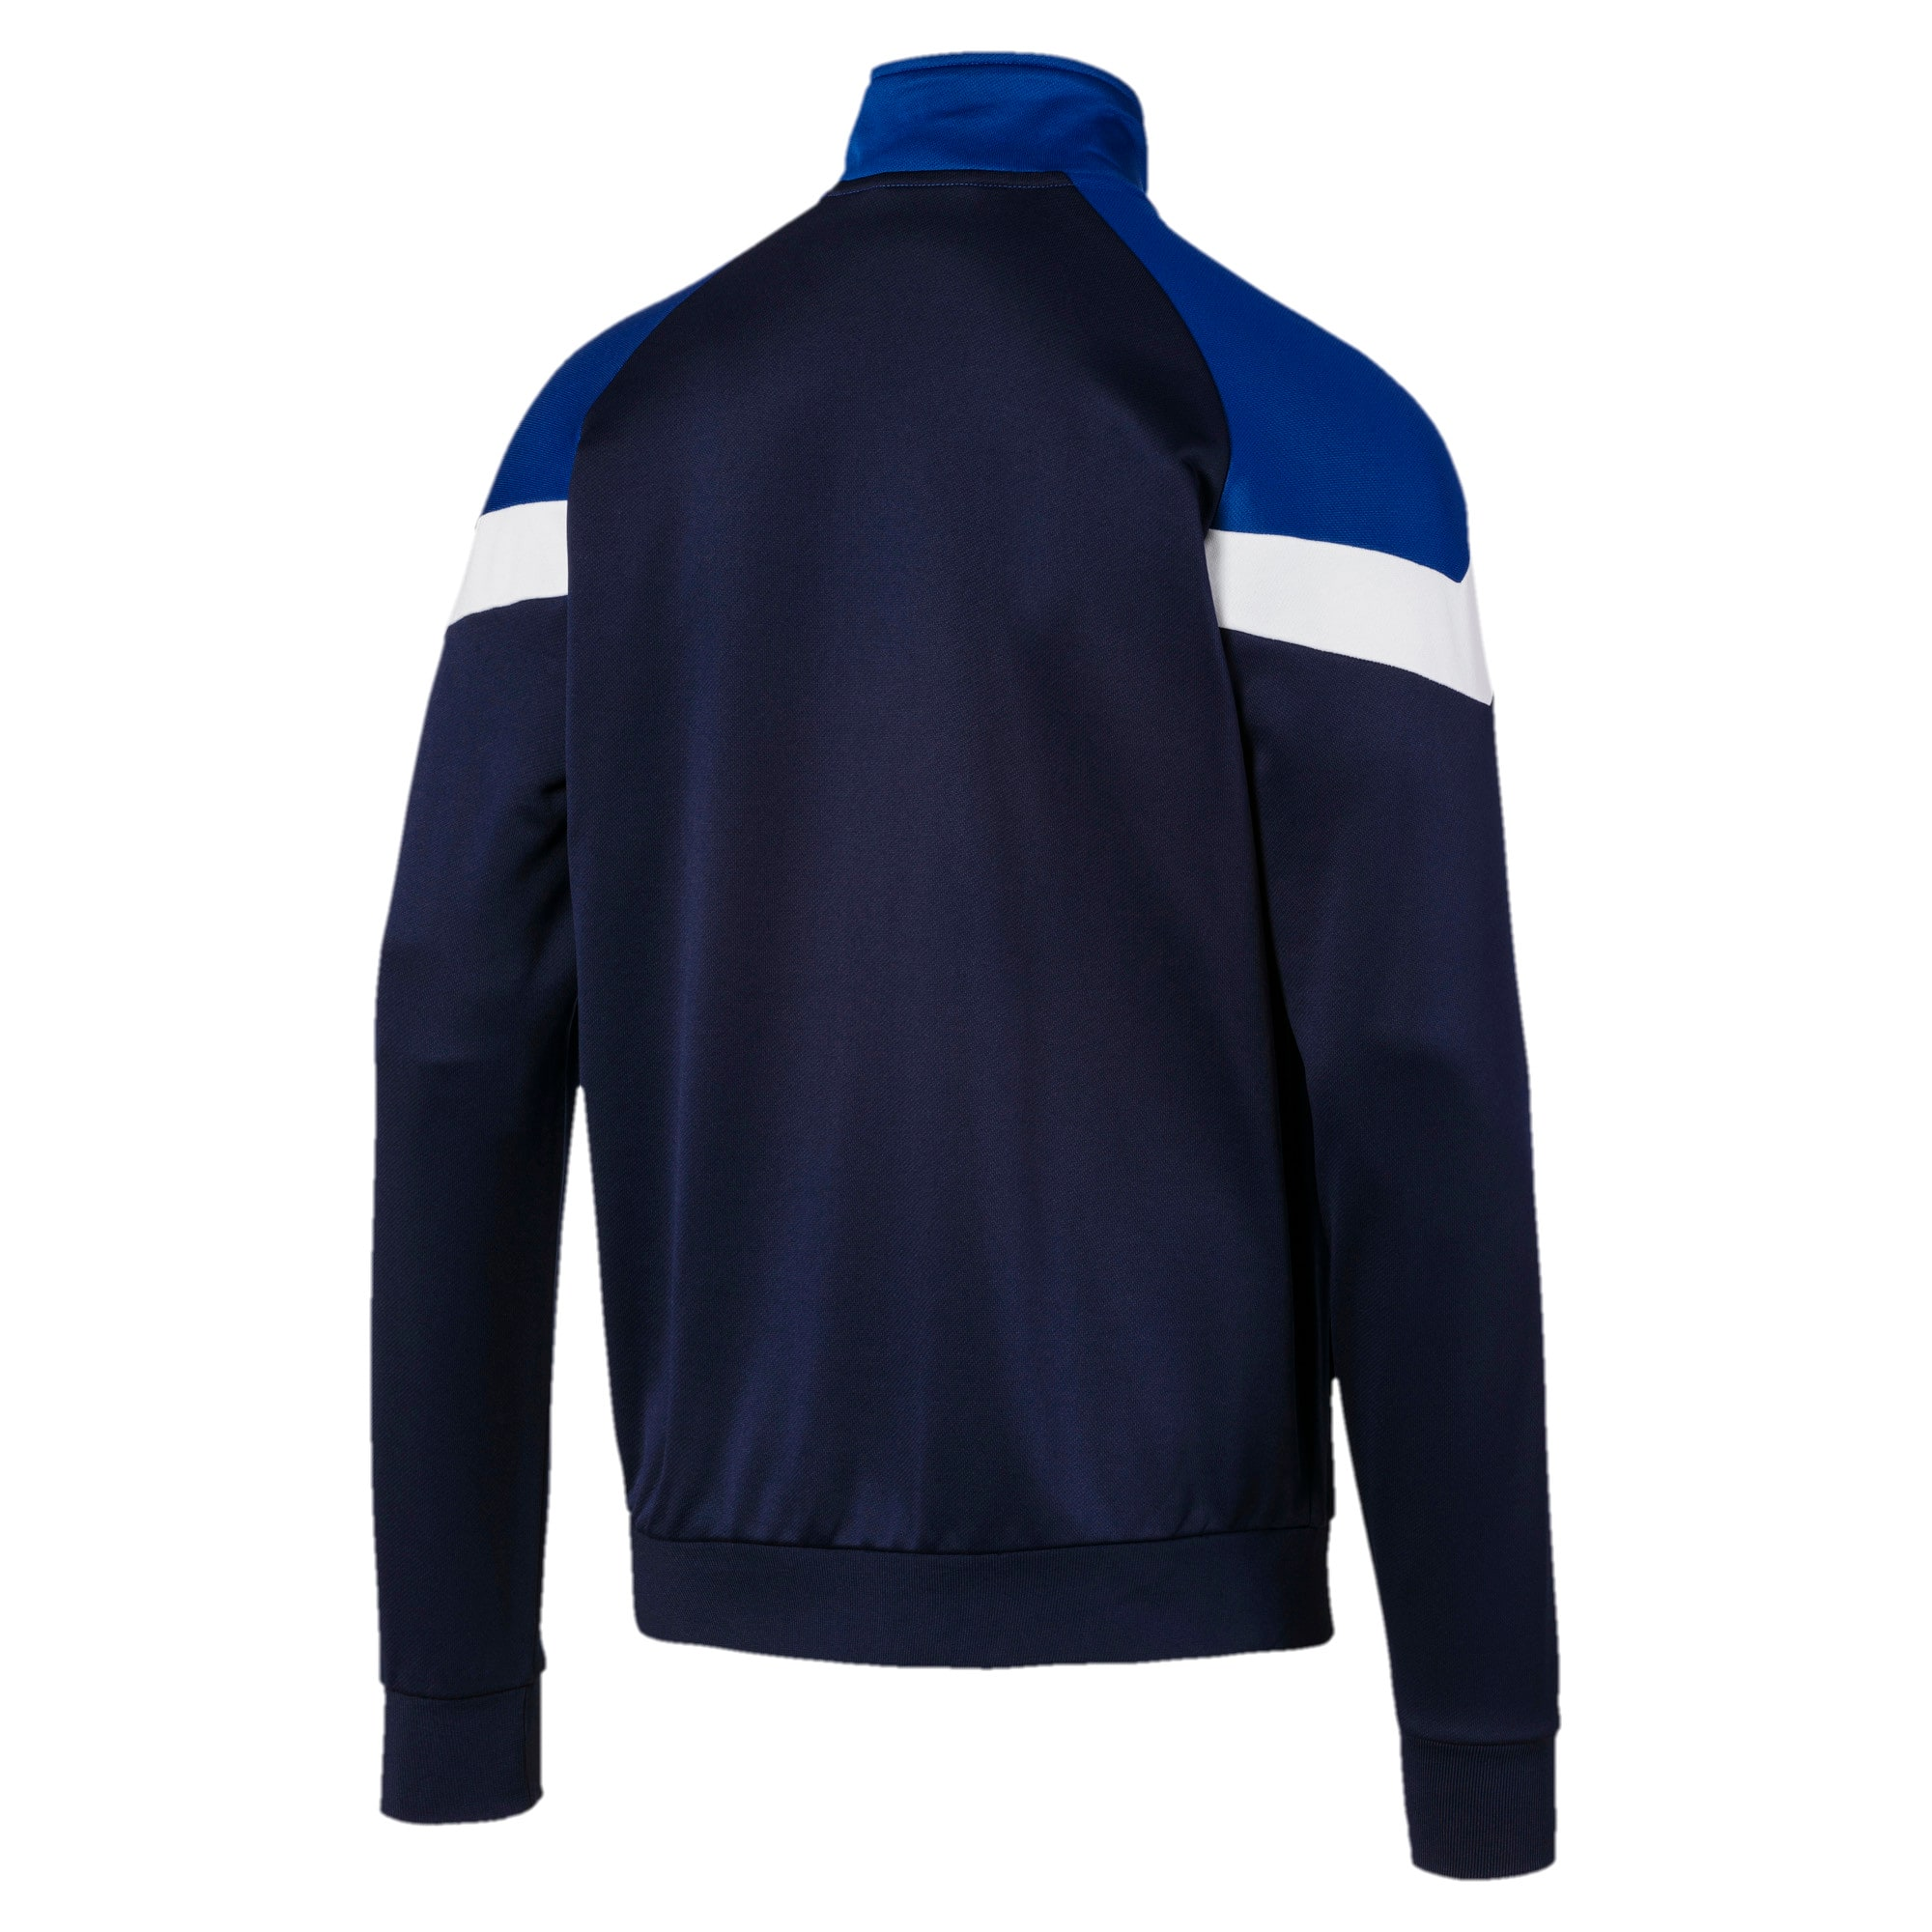 Thumbnail 5 of Iconic MCS Men's Track Jacket, Peacoat, medium